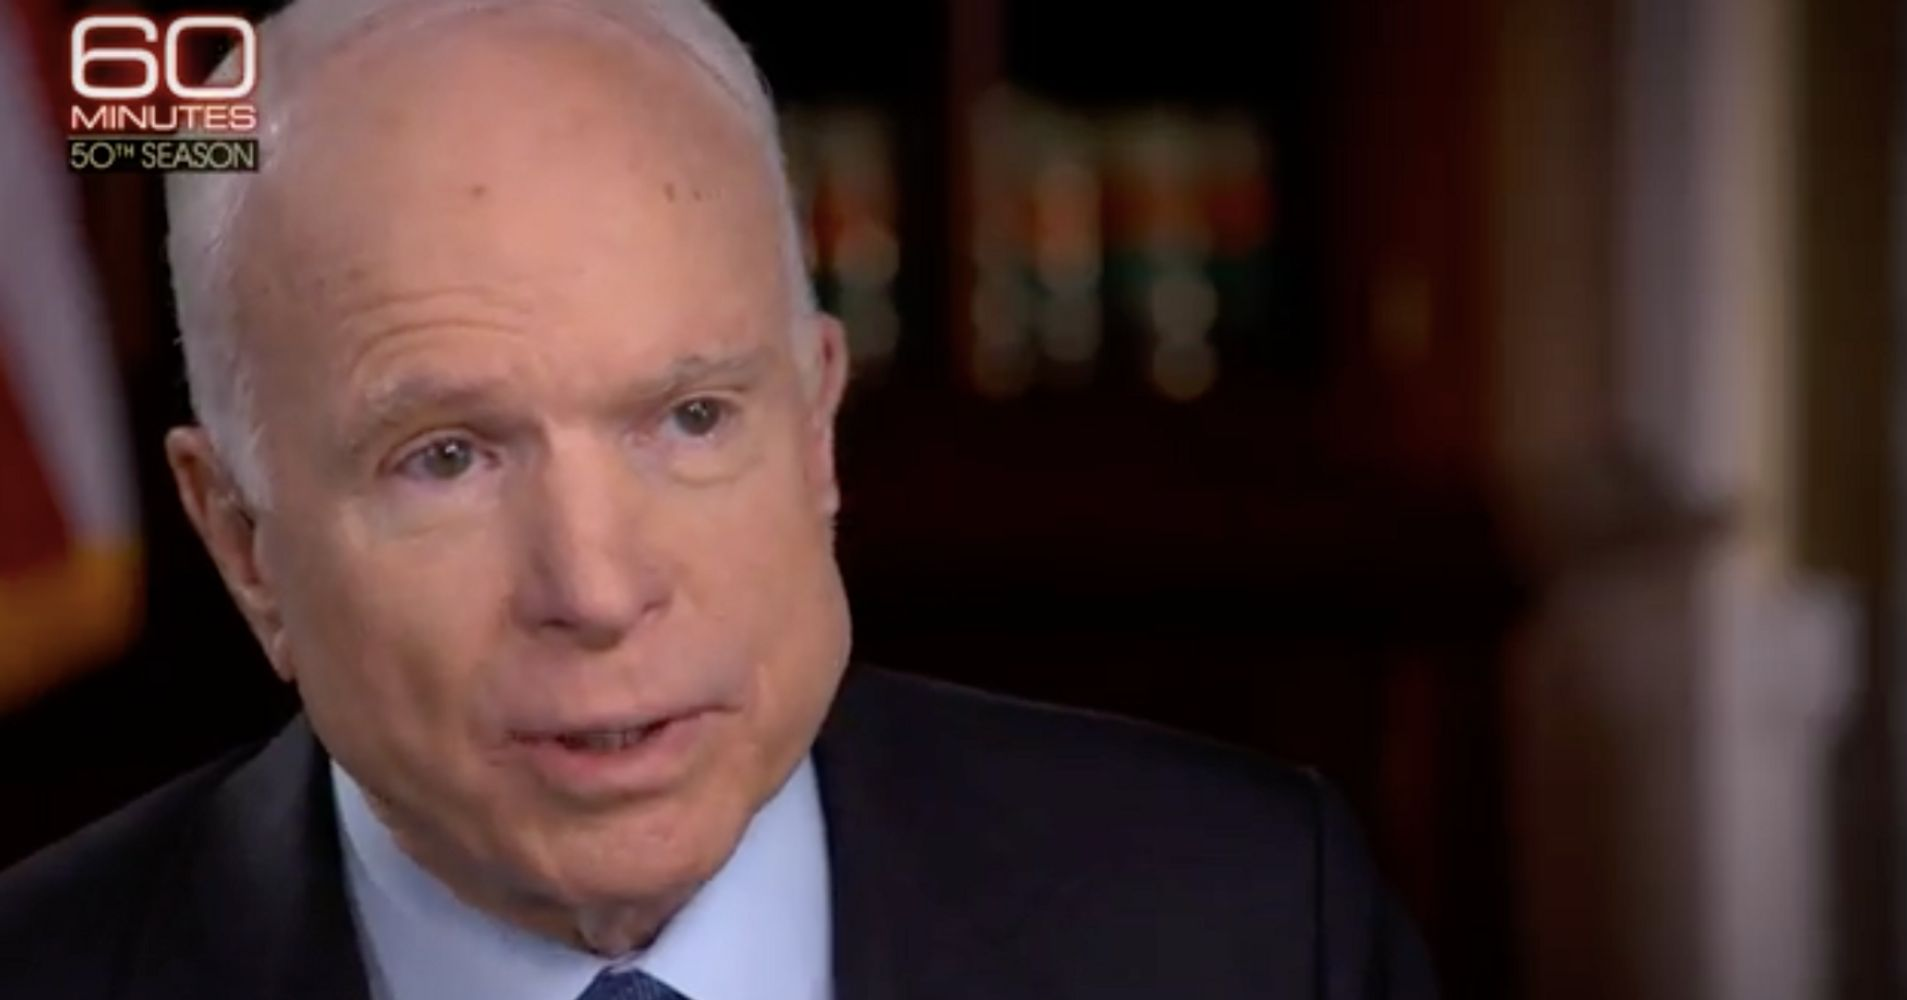 John McCain: Donald Trump Never Apologized For 'Captured' Insult